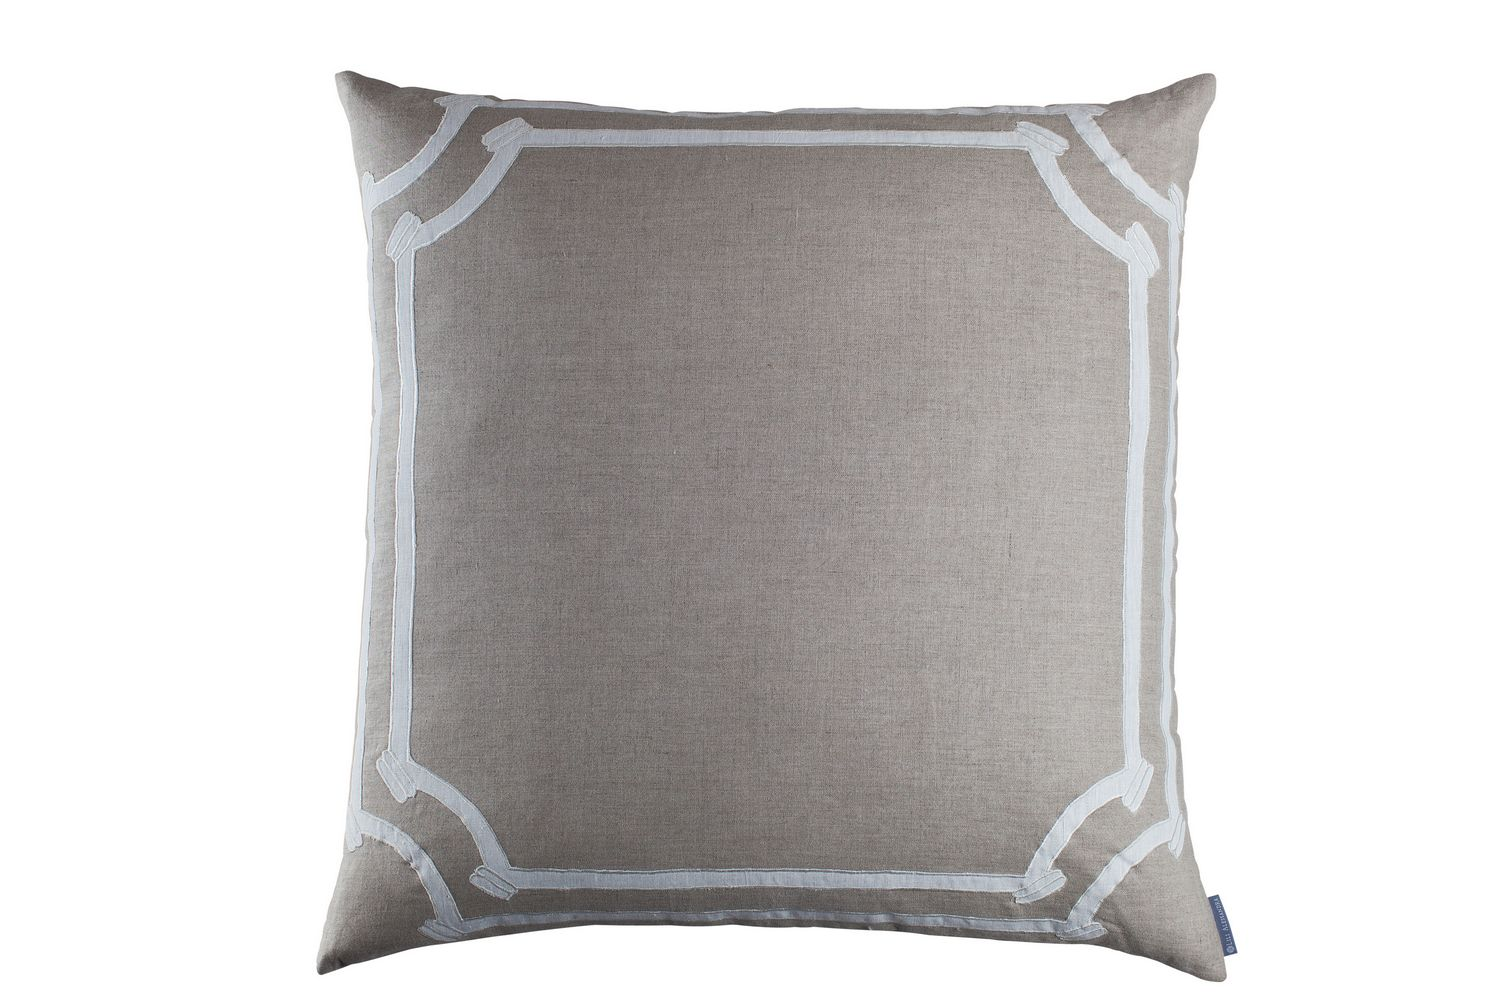 Lili Alessandra Angie Natural/White Linen Rectangle Pillow